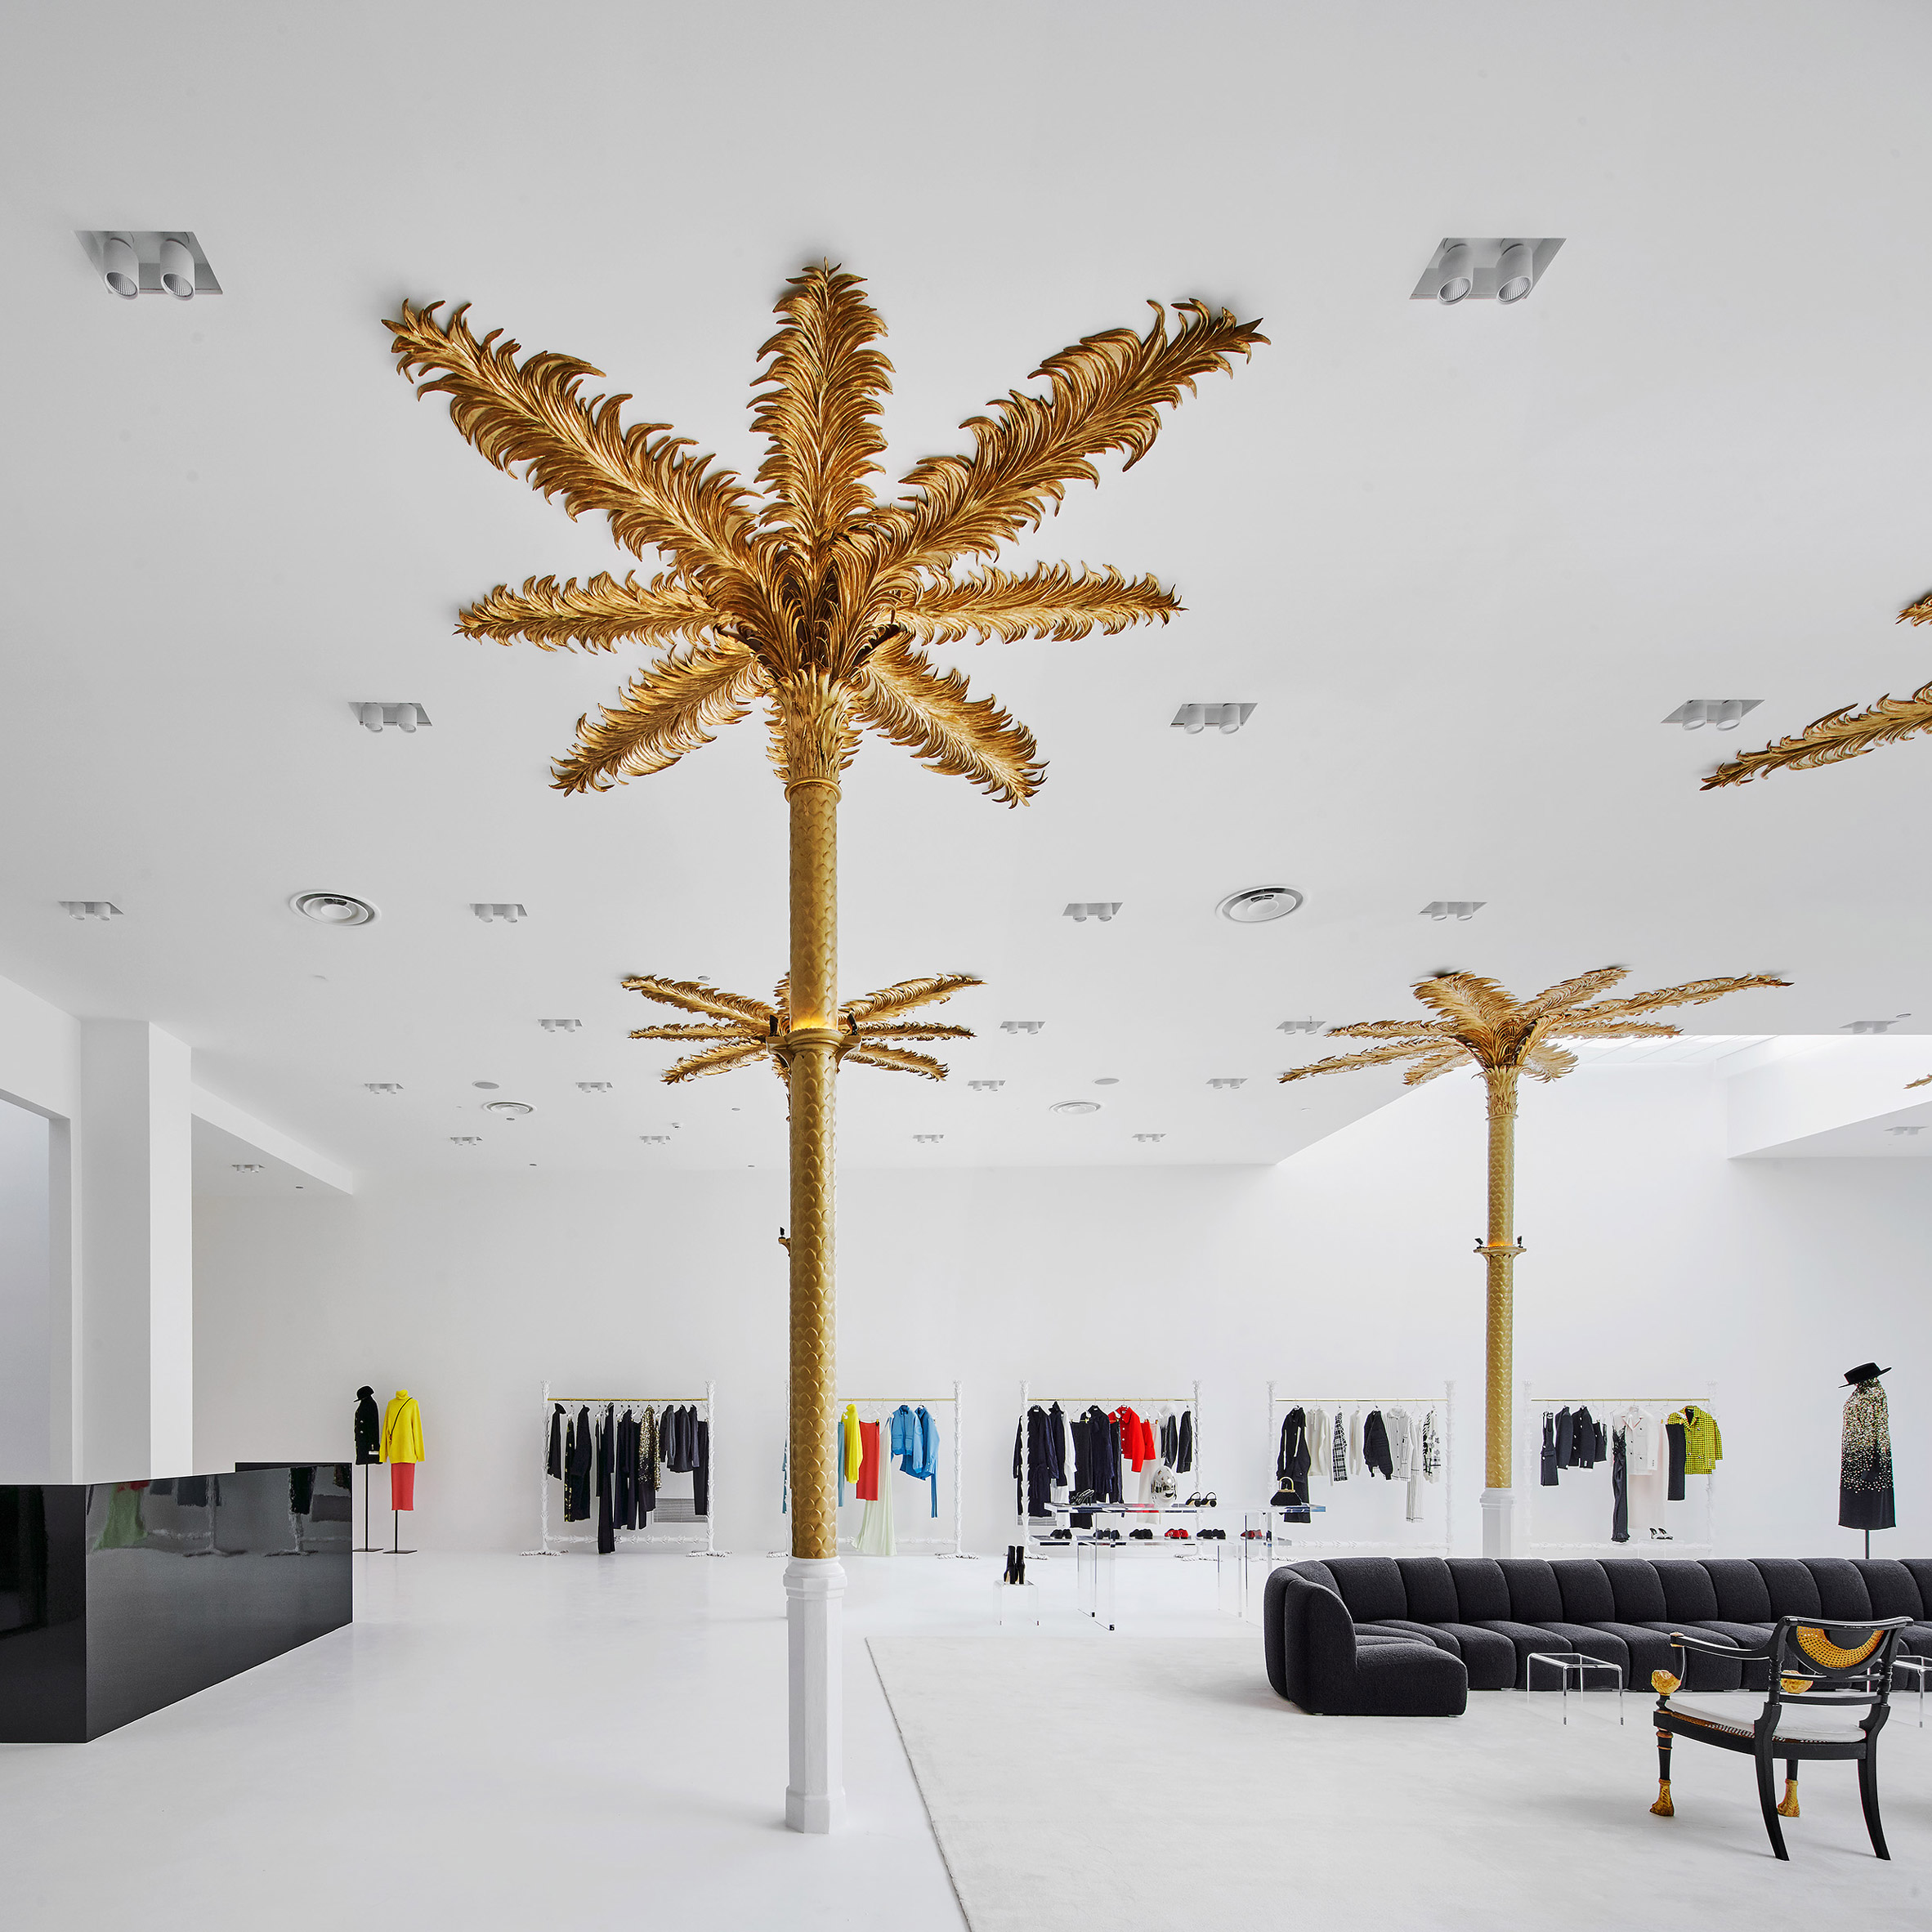 Gold Palm Trees Adorn The Monochromatic Interior Of Darial Concept Store